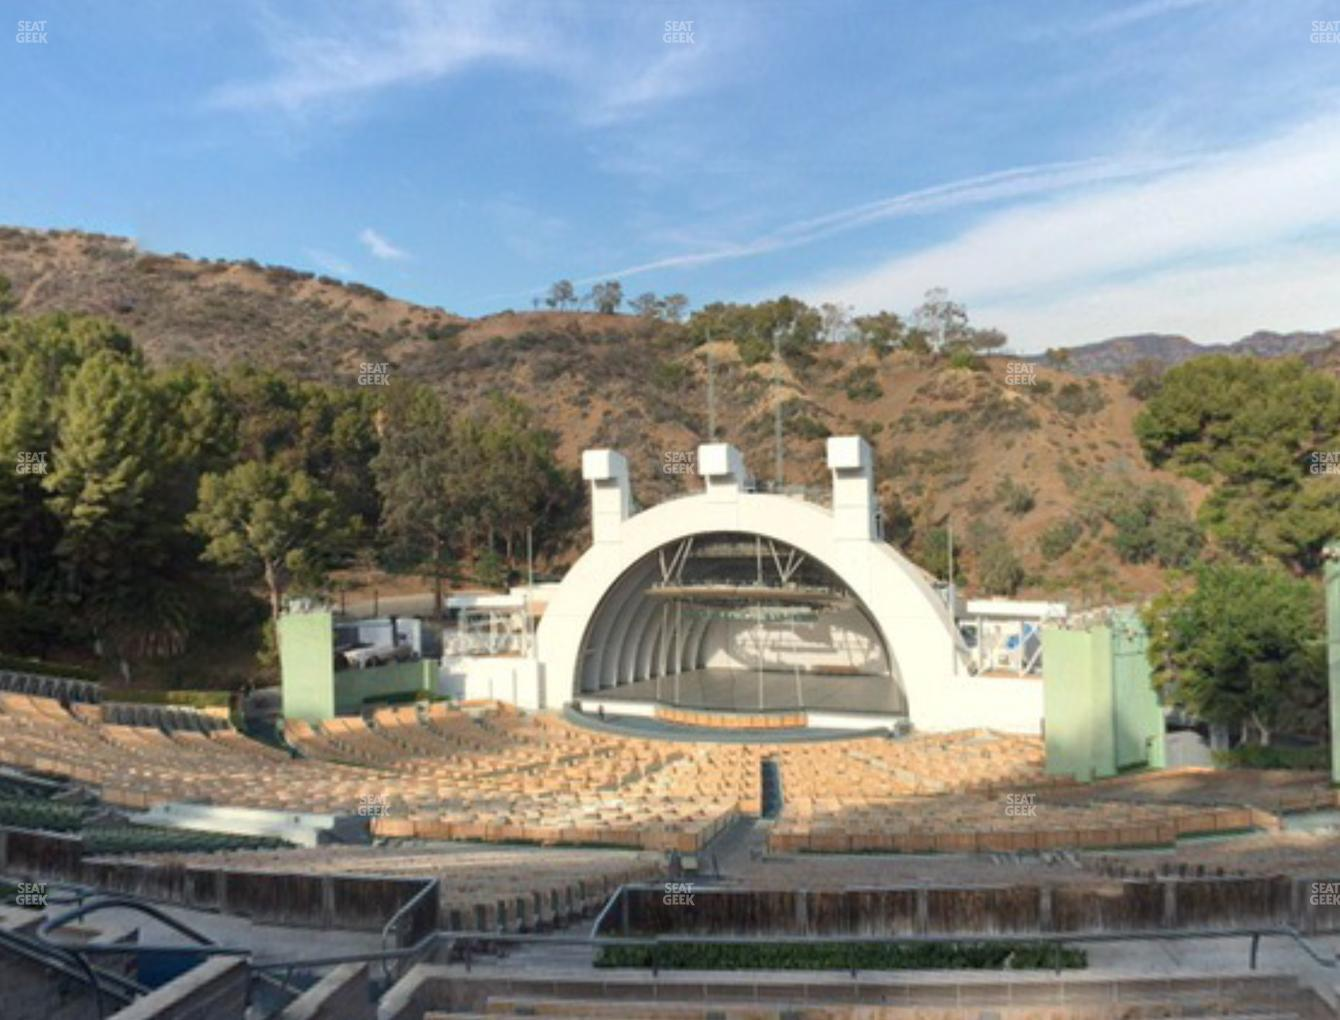 Concert at Hollywood Bowl Section L 1 View